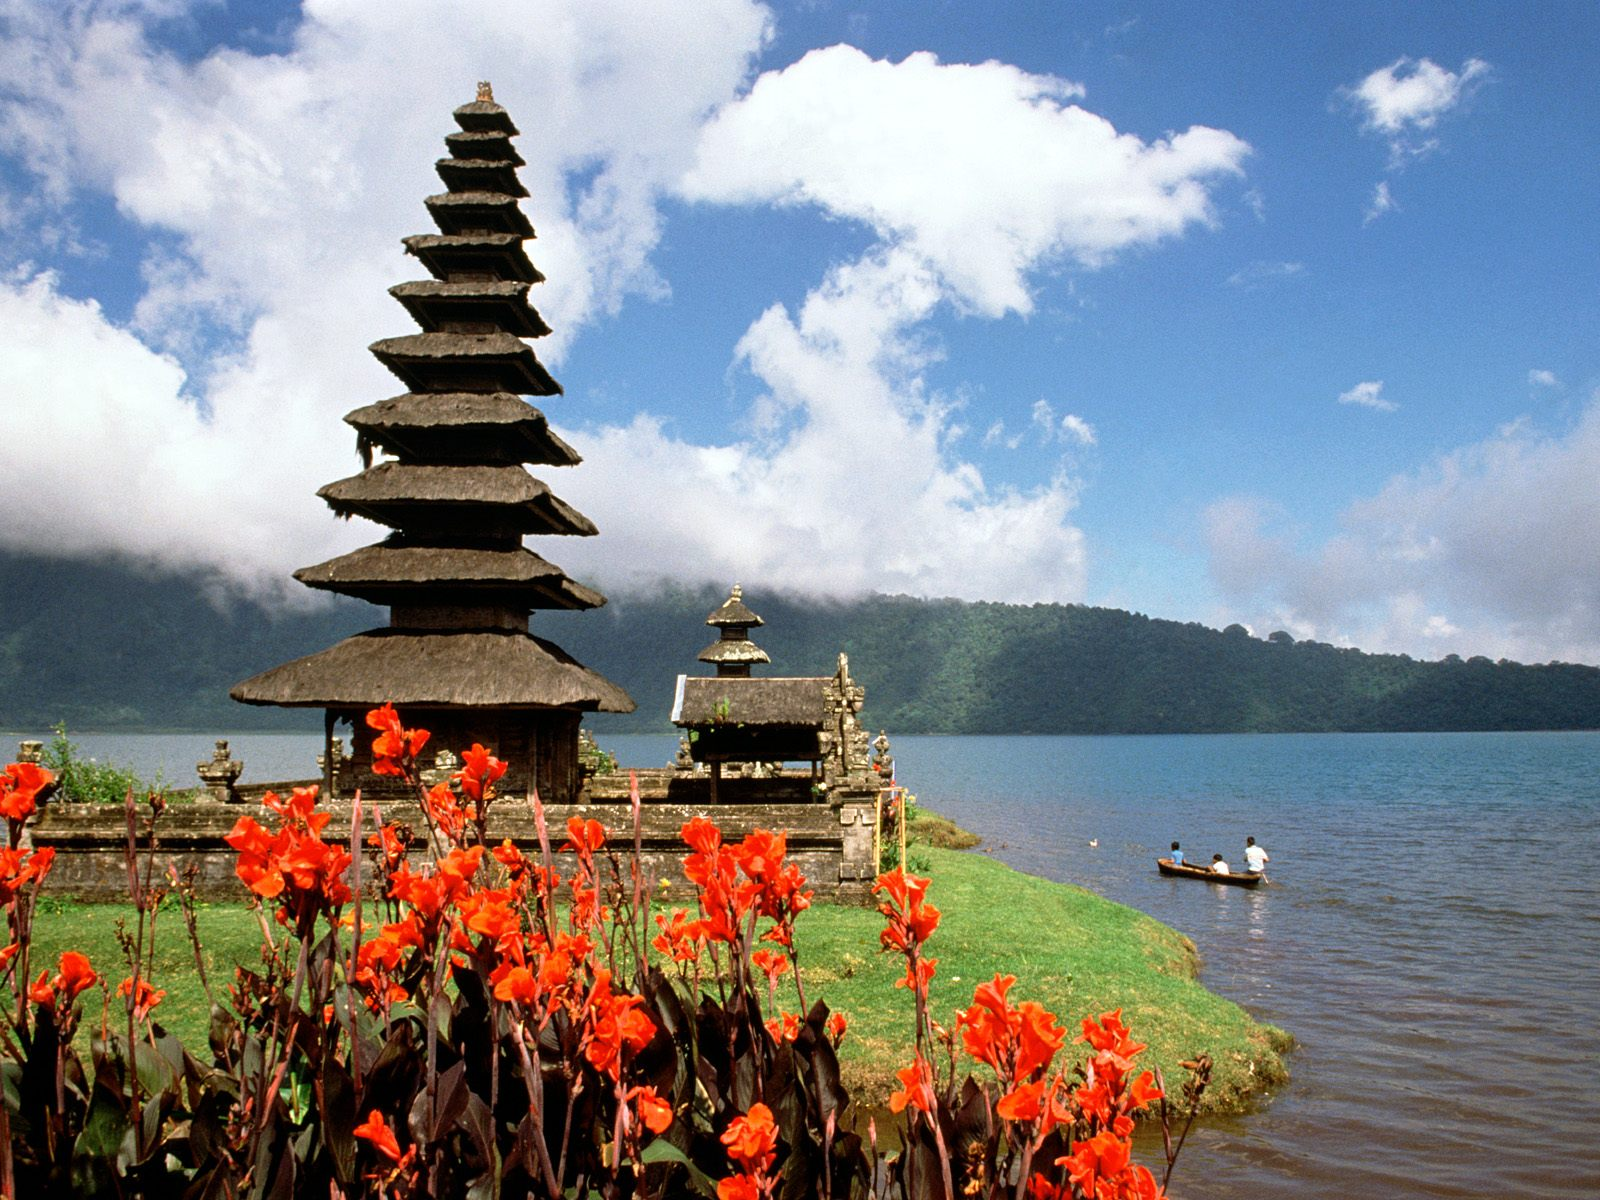 Bali Indonesia  city images : World Journalist news: Hinduism in Bali & Indonesia